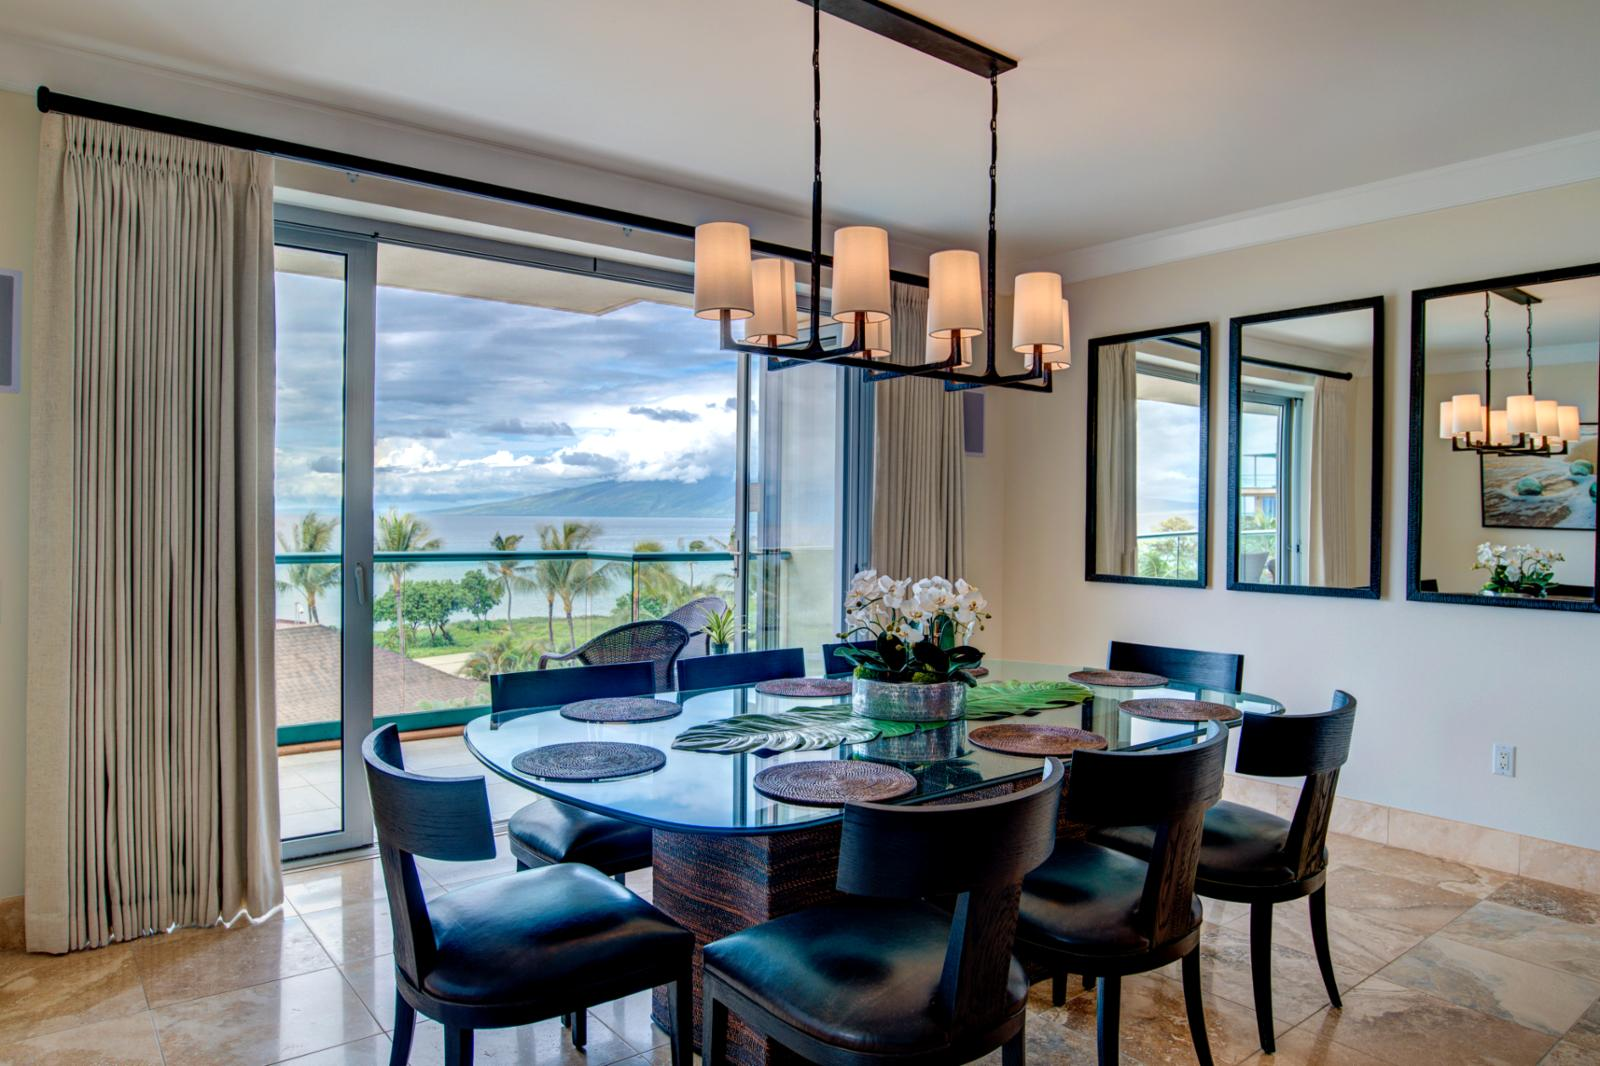 New formal dining room table seating for (8), accent lighting with unparalleled ocean views